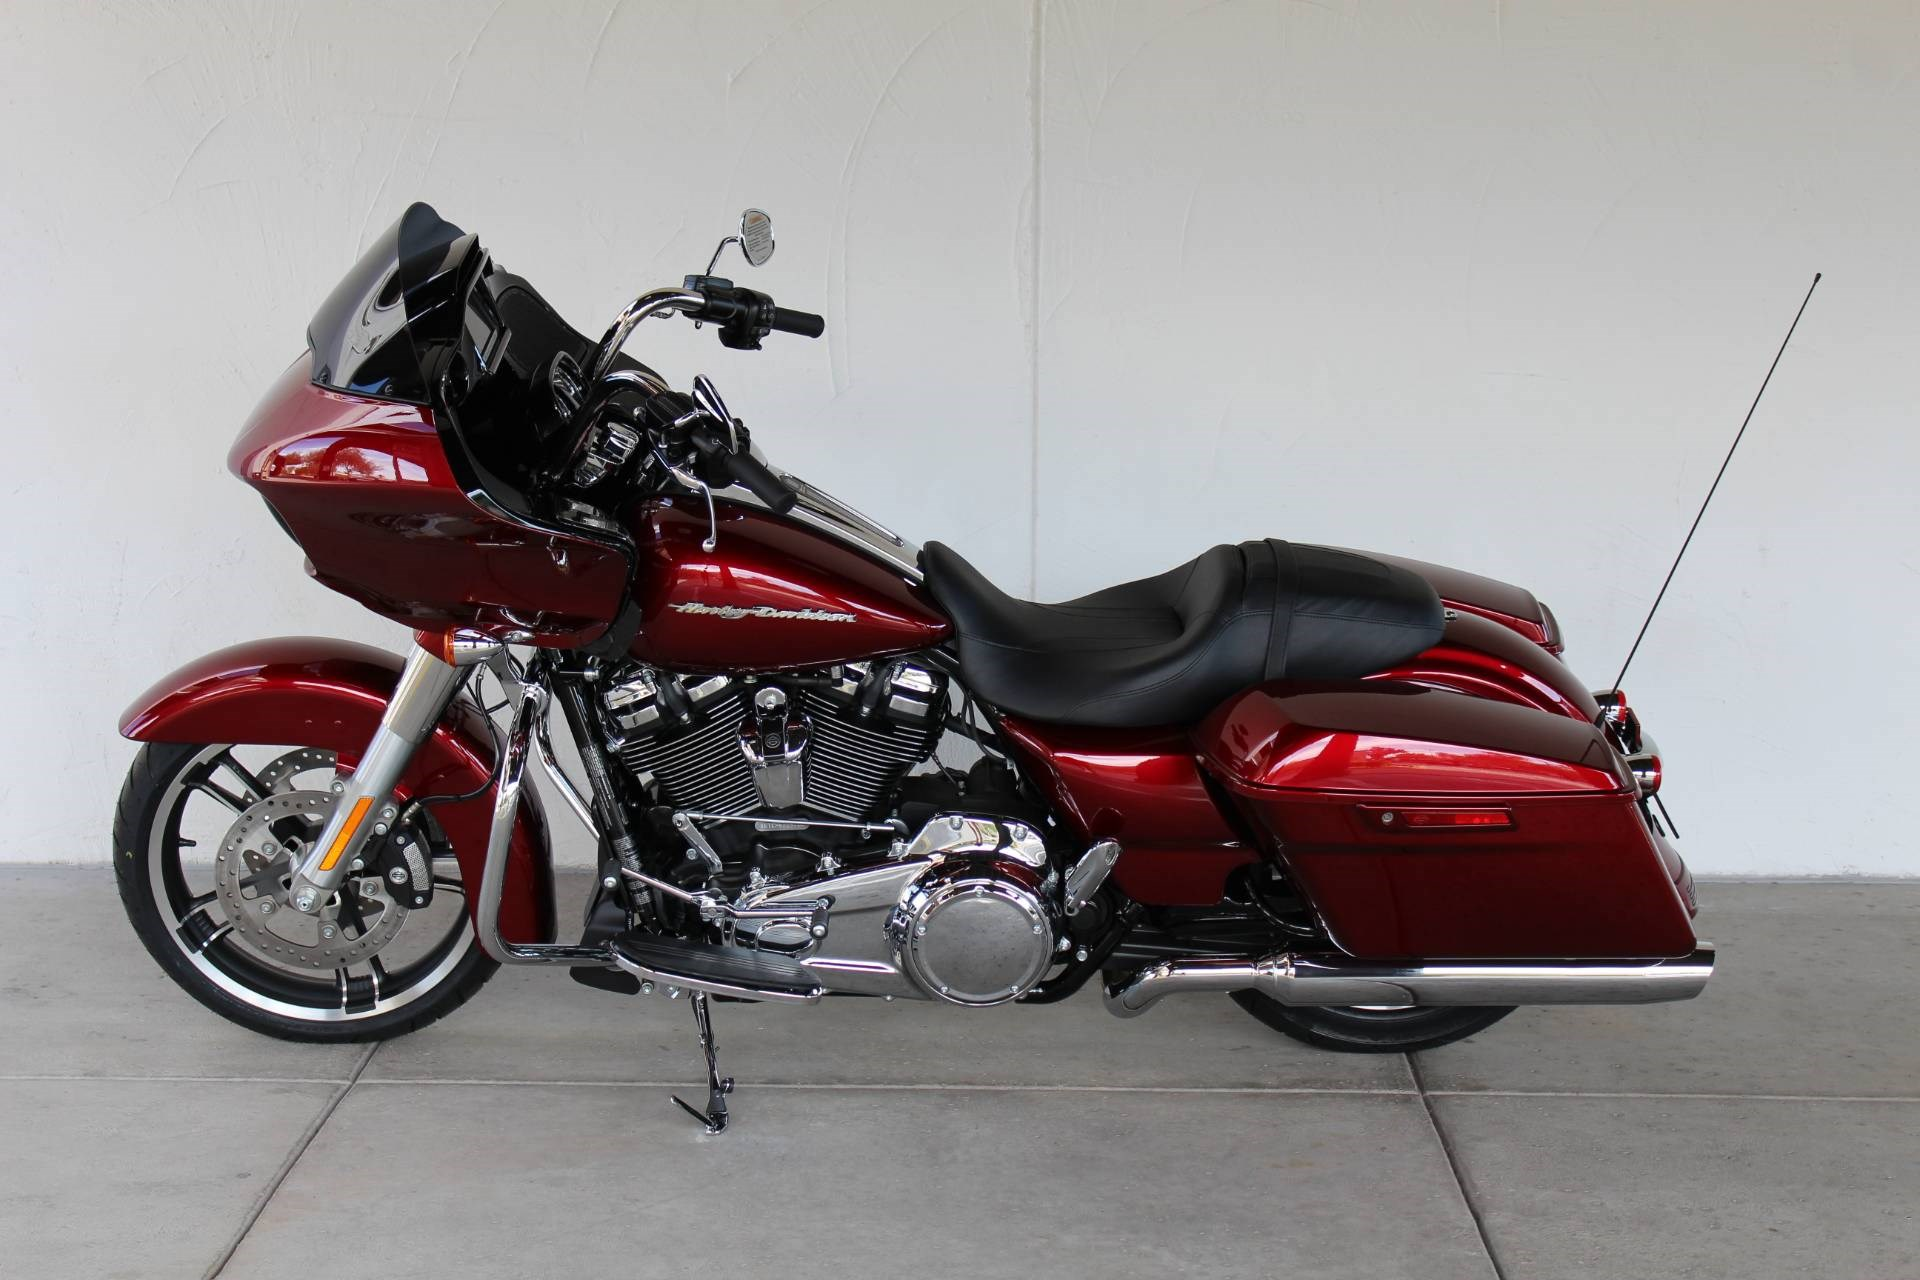 2017 harley davidson fltrxs road glide special velocity red sunglo apache junction arizona. Black Bedroom Furniture Sets. Home Design Ideas